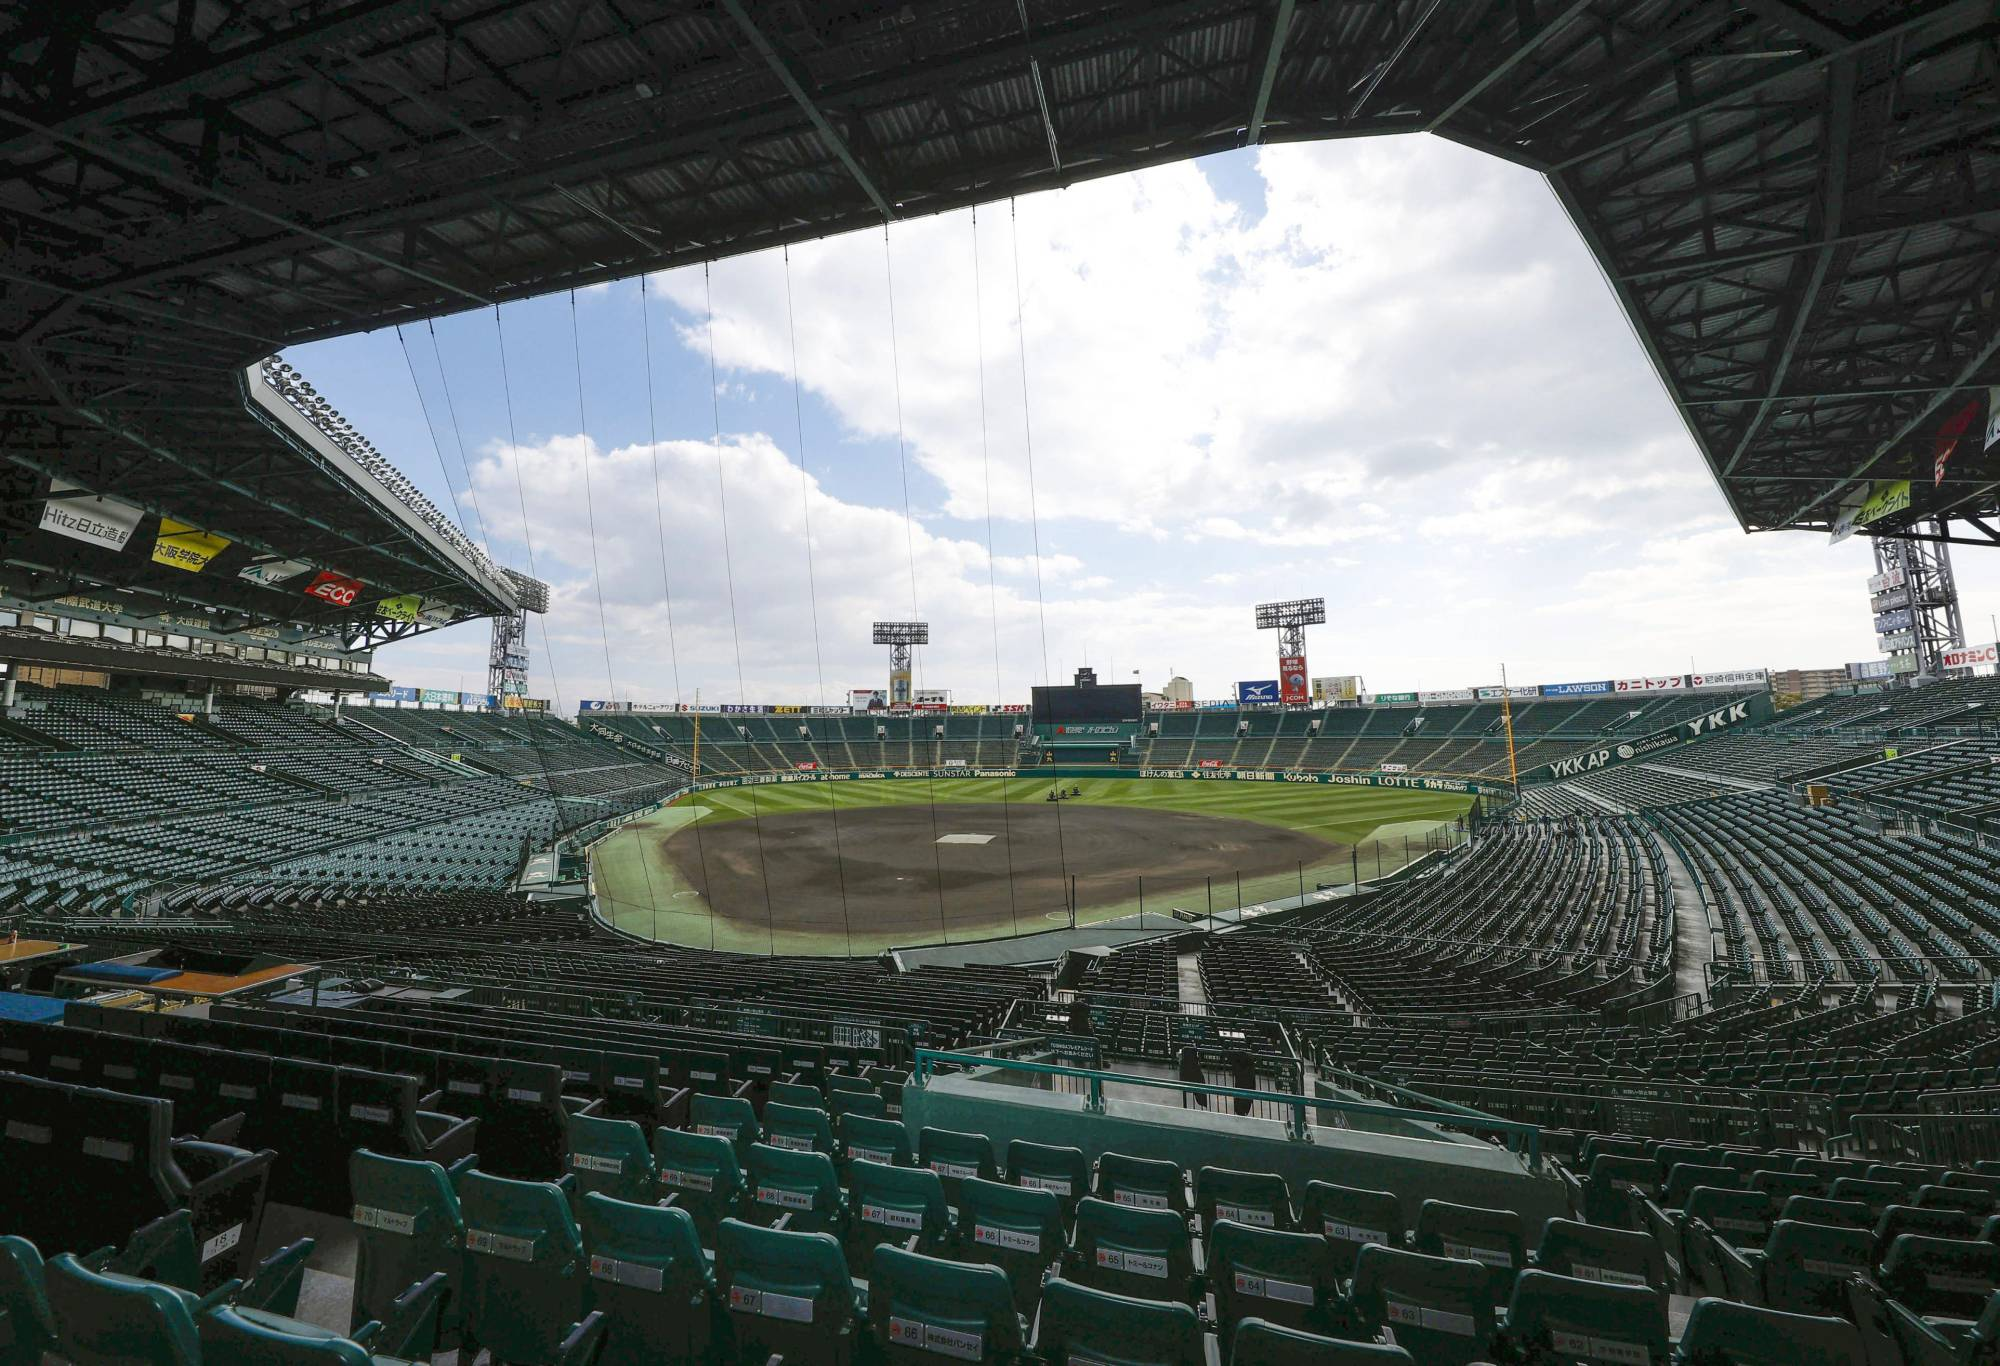 Attendance at Koshien Stadium in Nishinomiya, Hyogo Prefecture, for the upcoming spring invitational high school baseball tournament will be limited to 10,000 fans per day. | KYODO